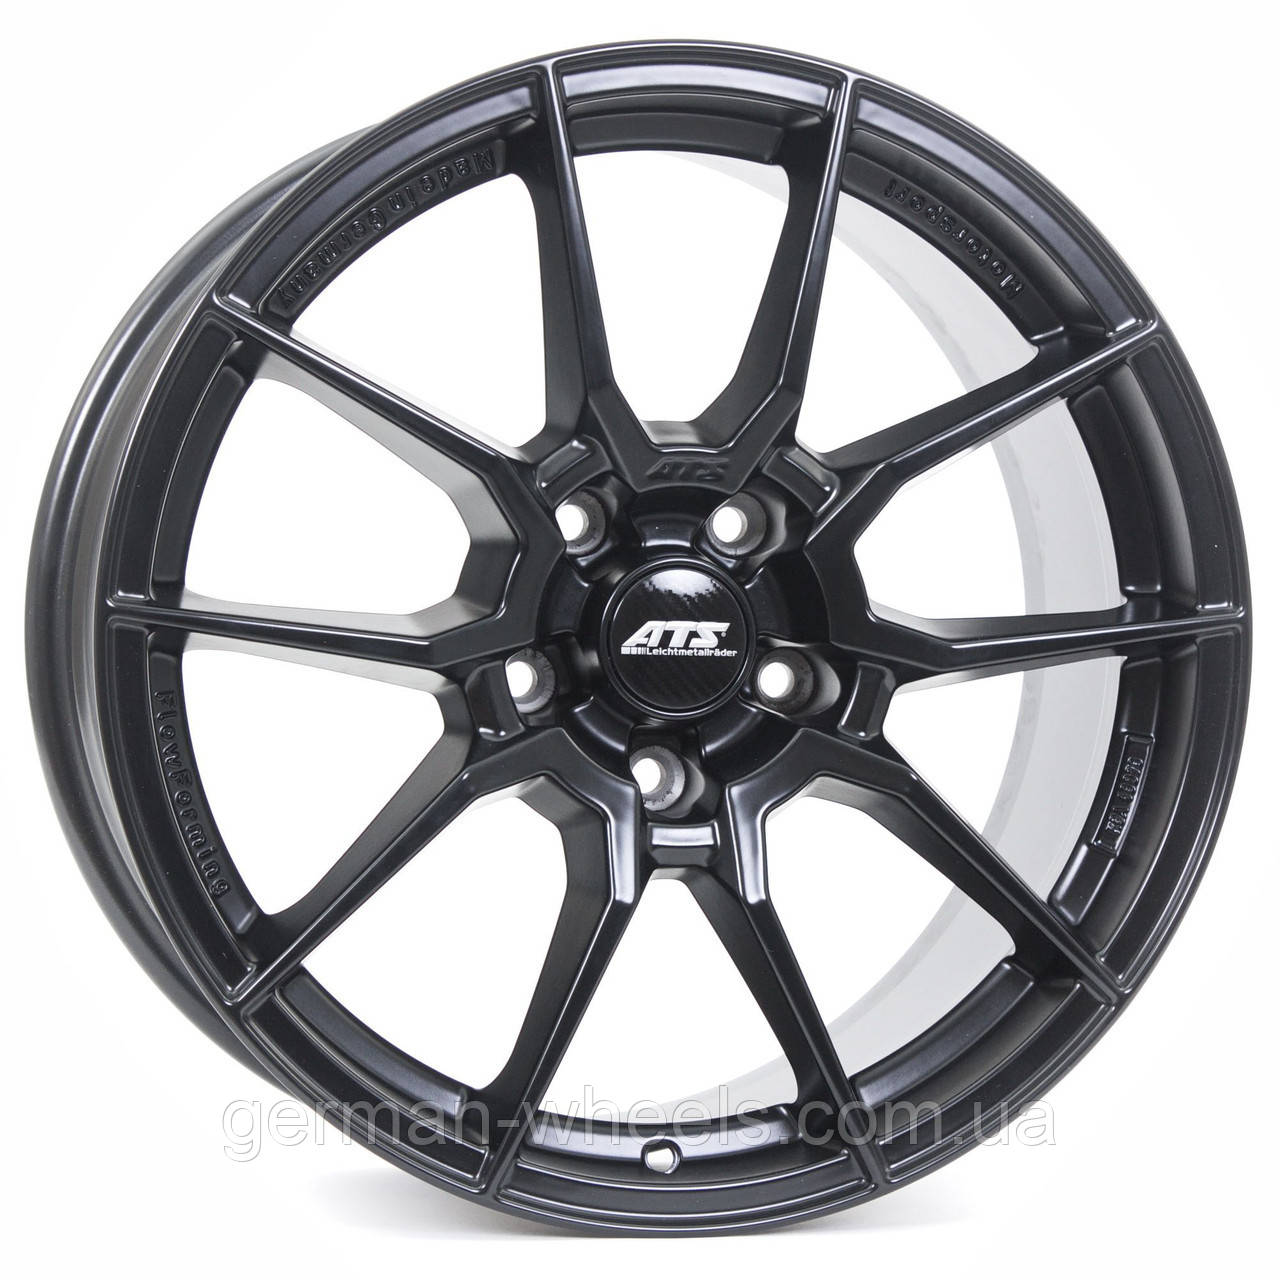 "Диски ATS (АТС) модель RACELIGHT цвет Racing-black параметры 8.5J x 19"" 5 x 114.3 ET 49"